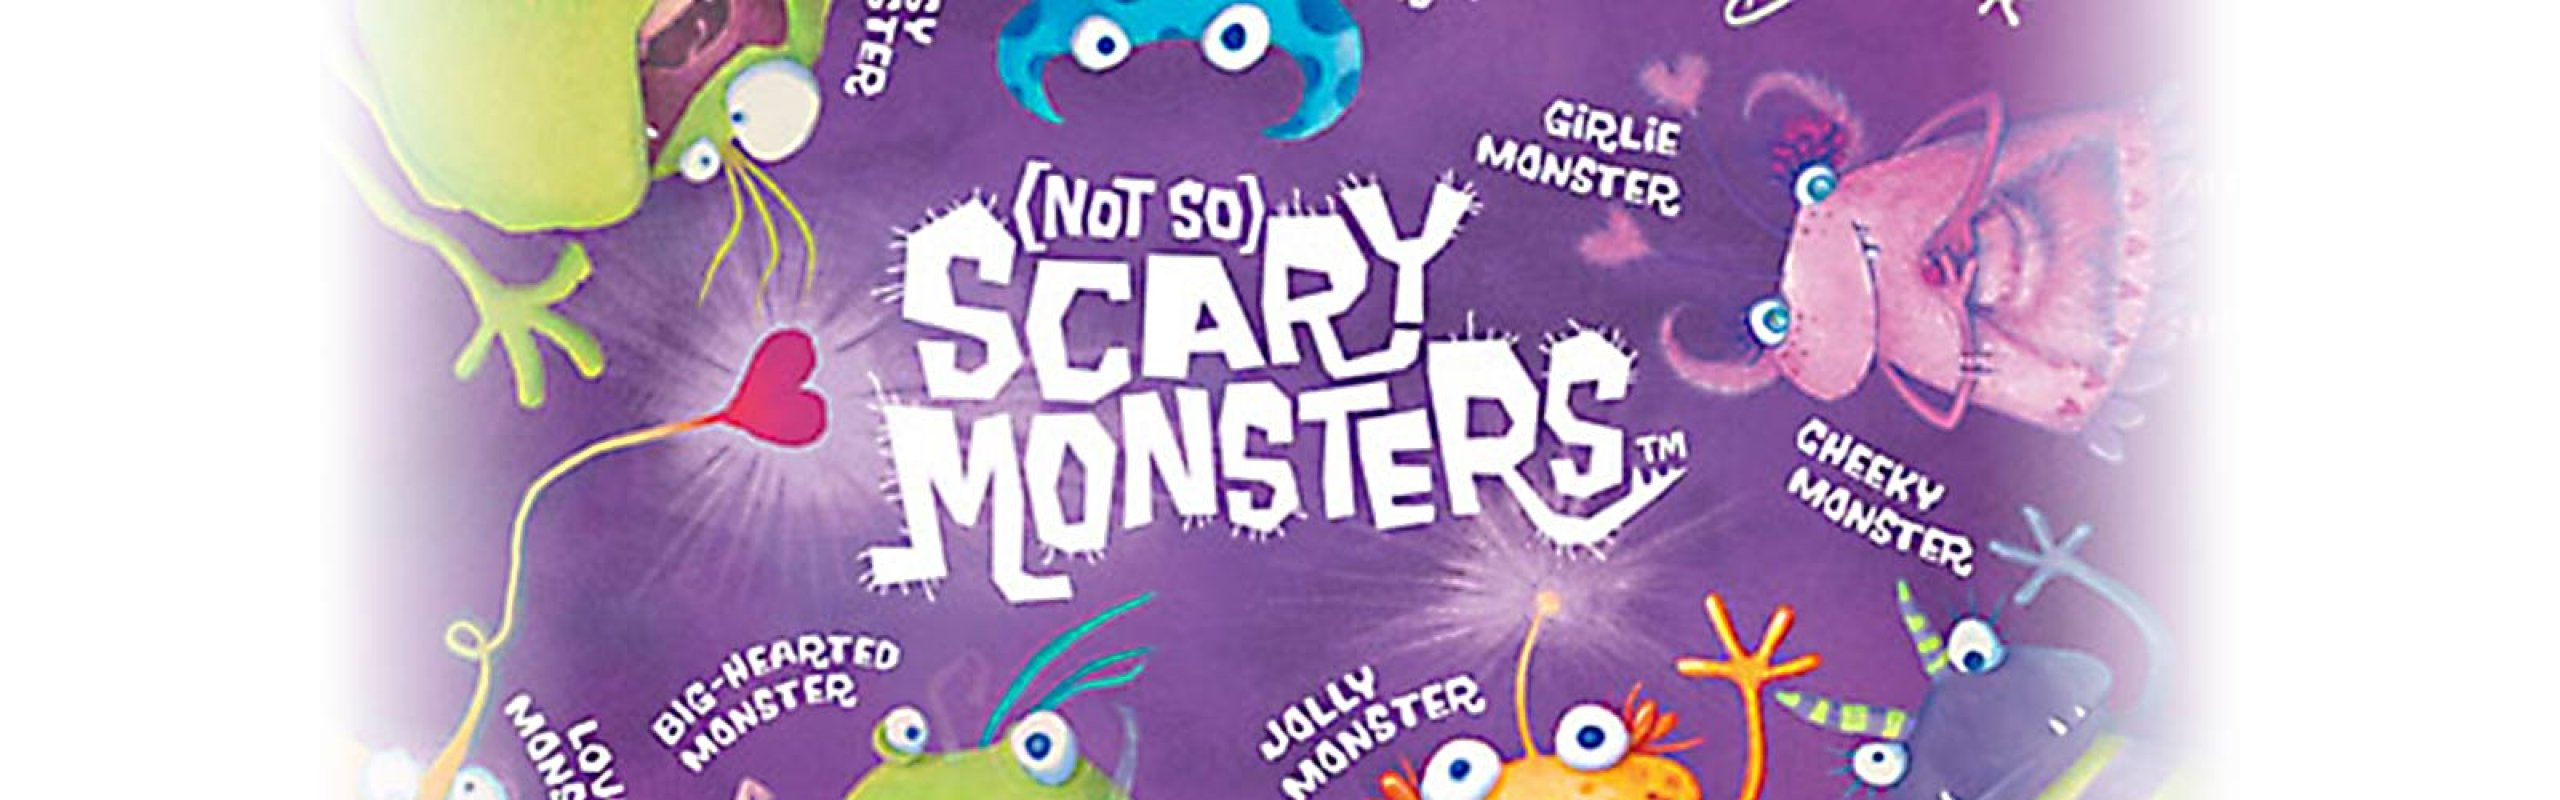 (Not so) Scary Monsters